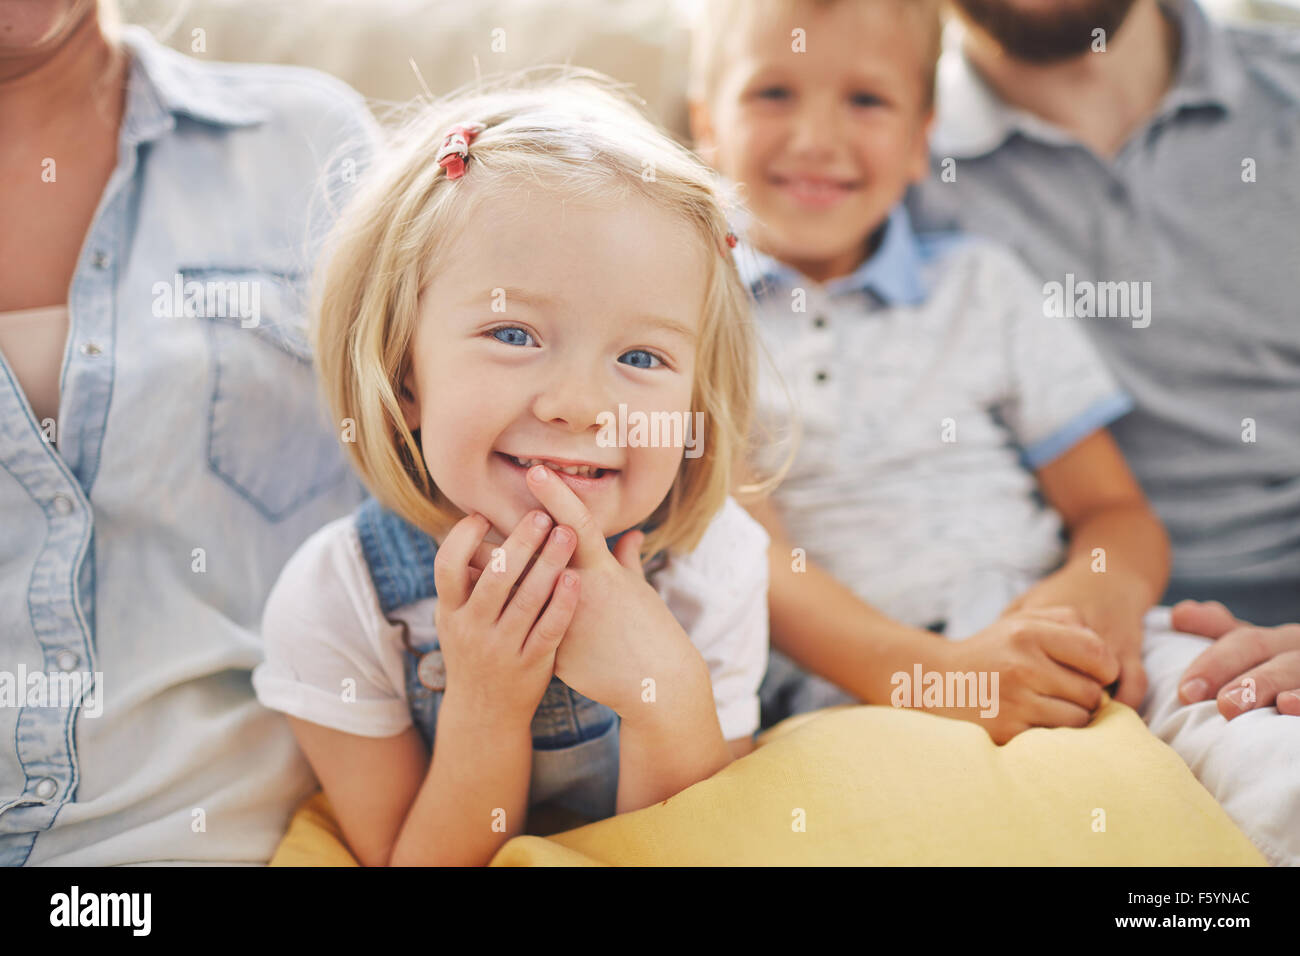 Sweet little girl looking at camera with her parents and brother near by Stock Photo